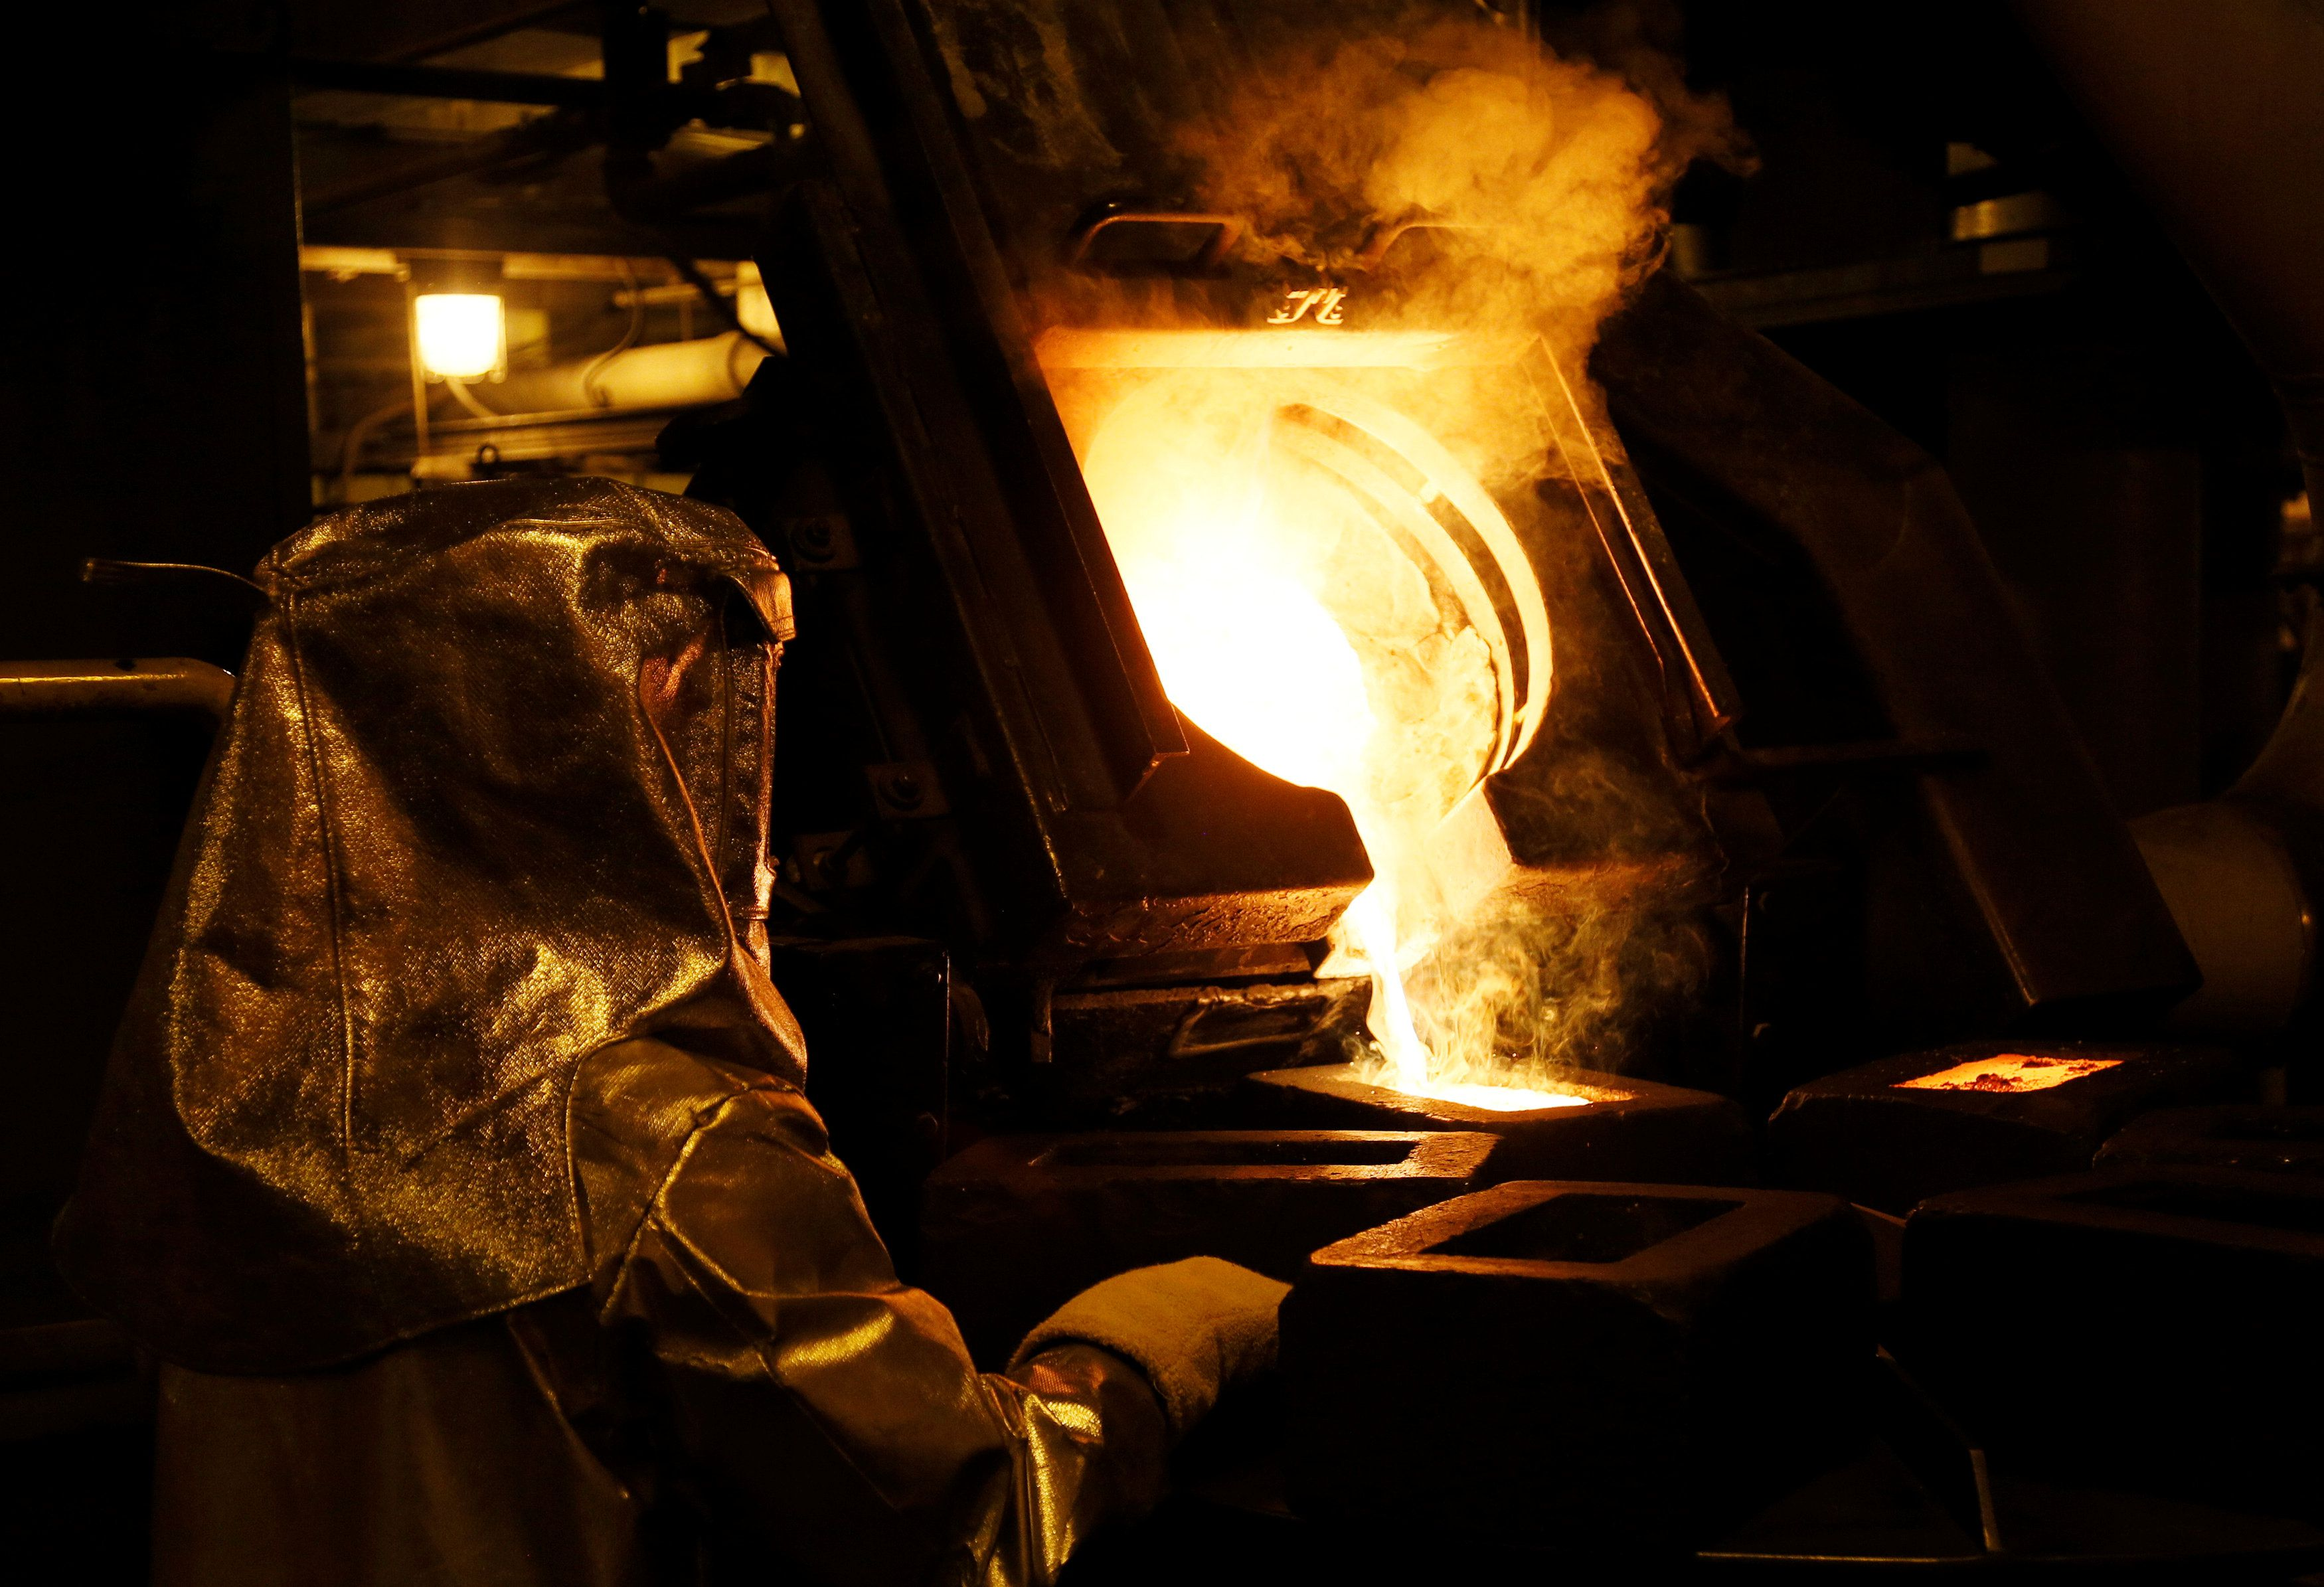 Barrick to shift focus away from free cash flow as first-quarter profit falls